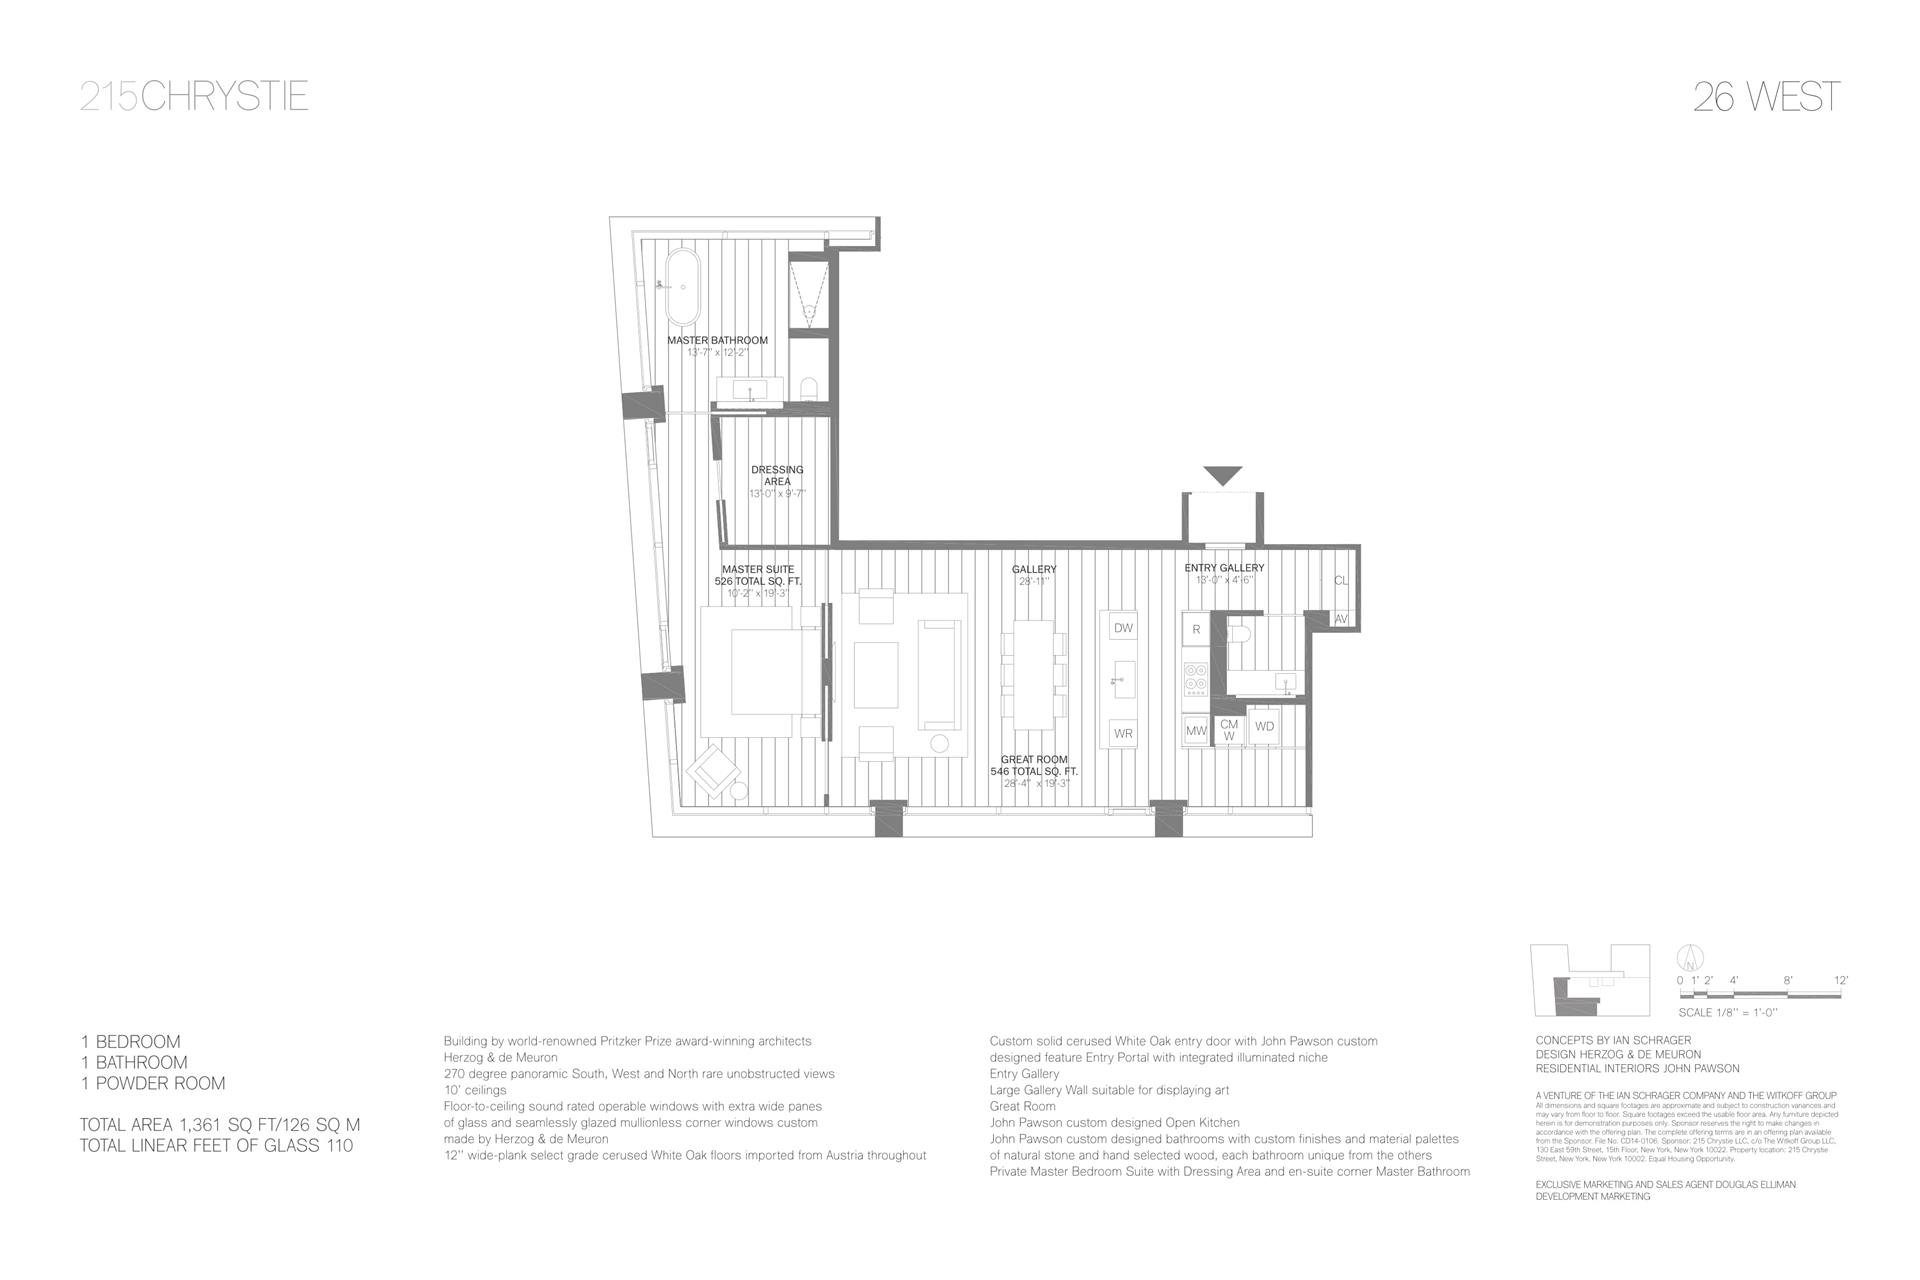 Floor plan of 215 Chrystie St, 26WEST - Lower East Side, New York